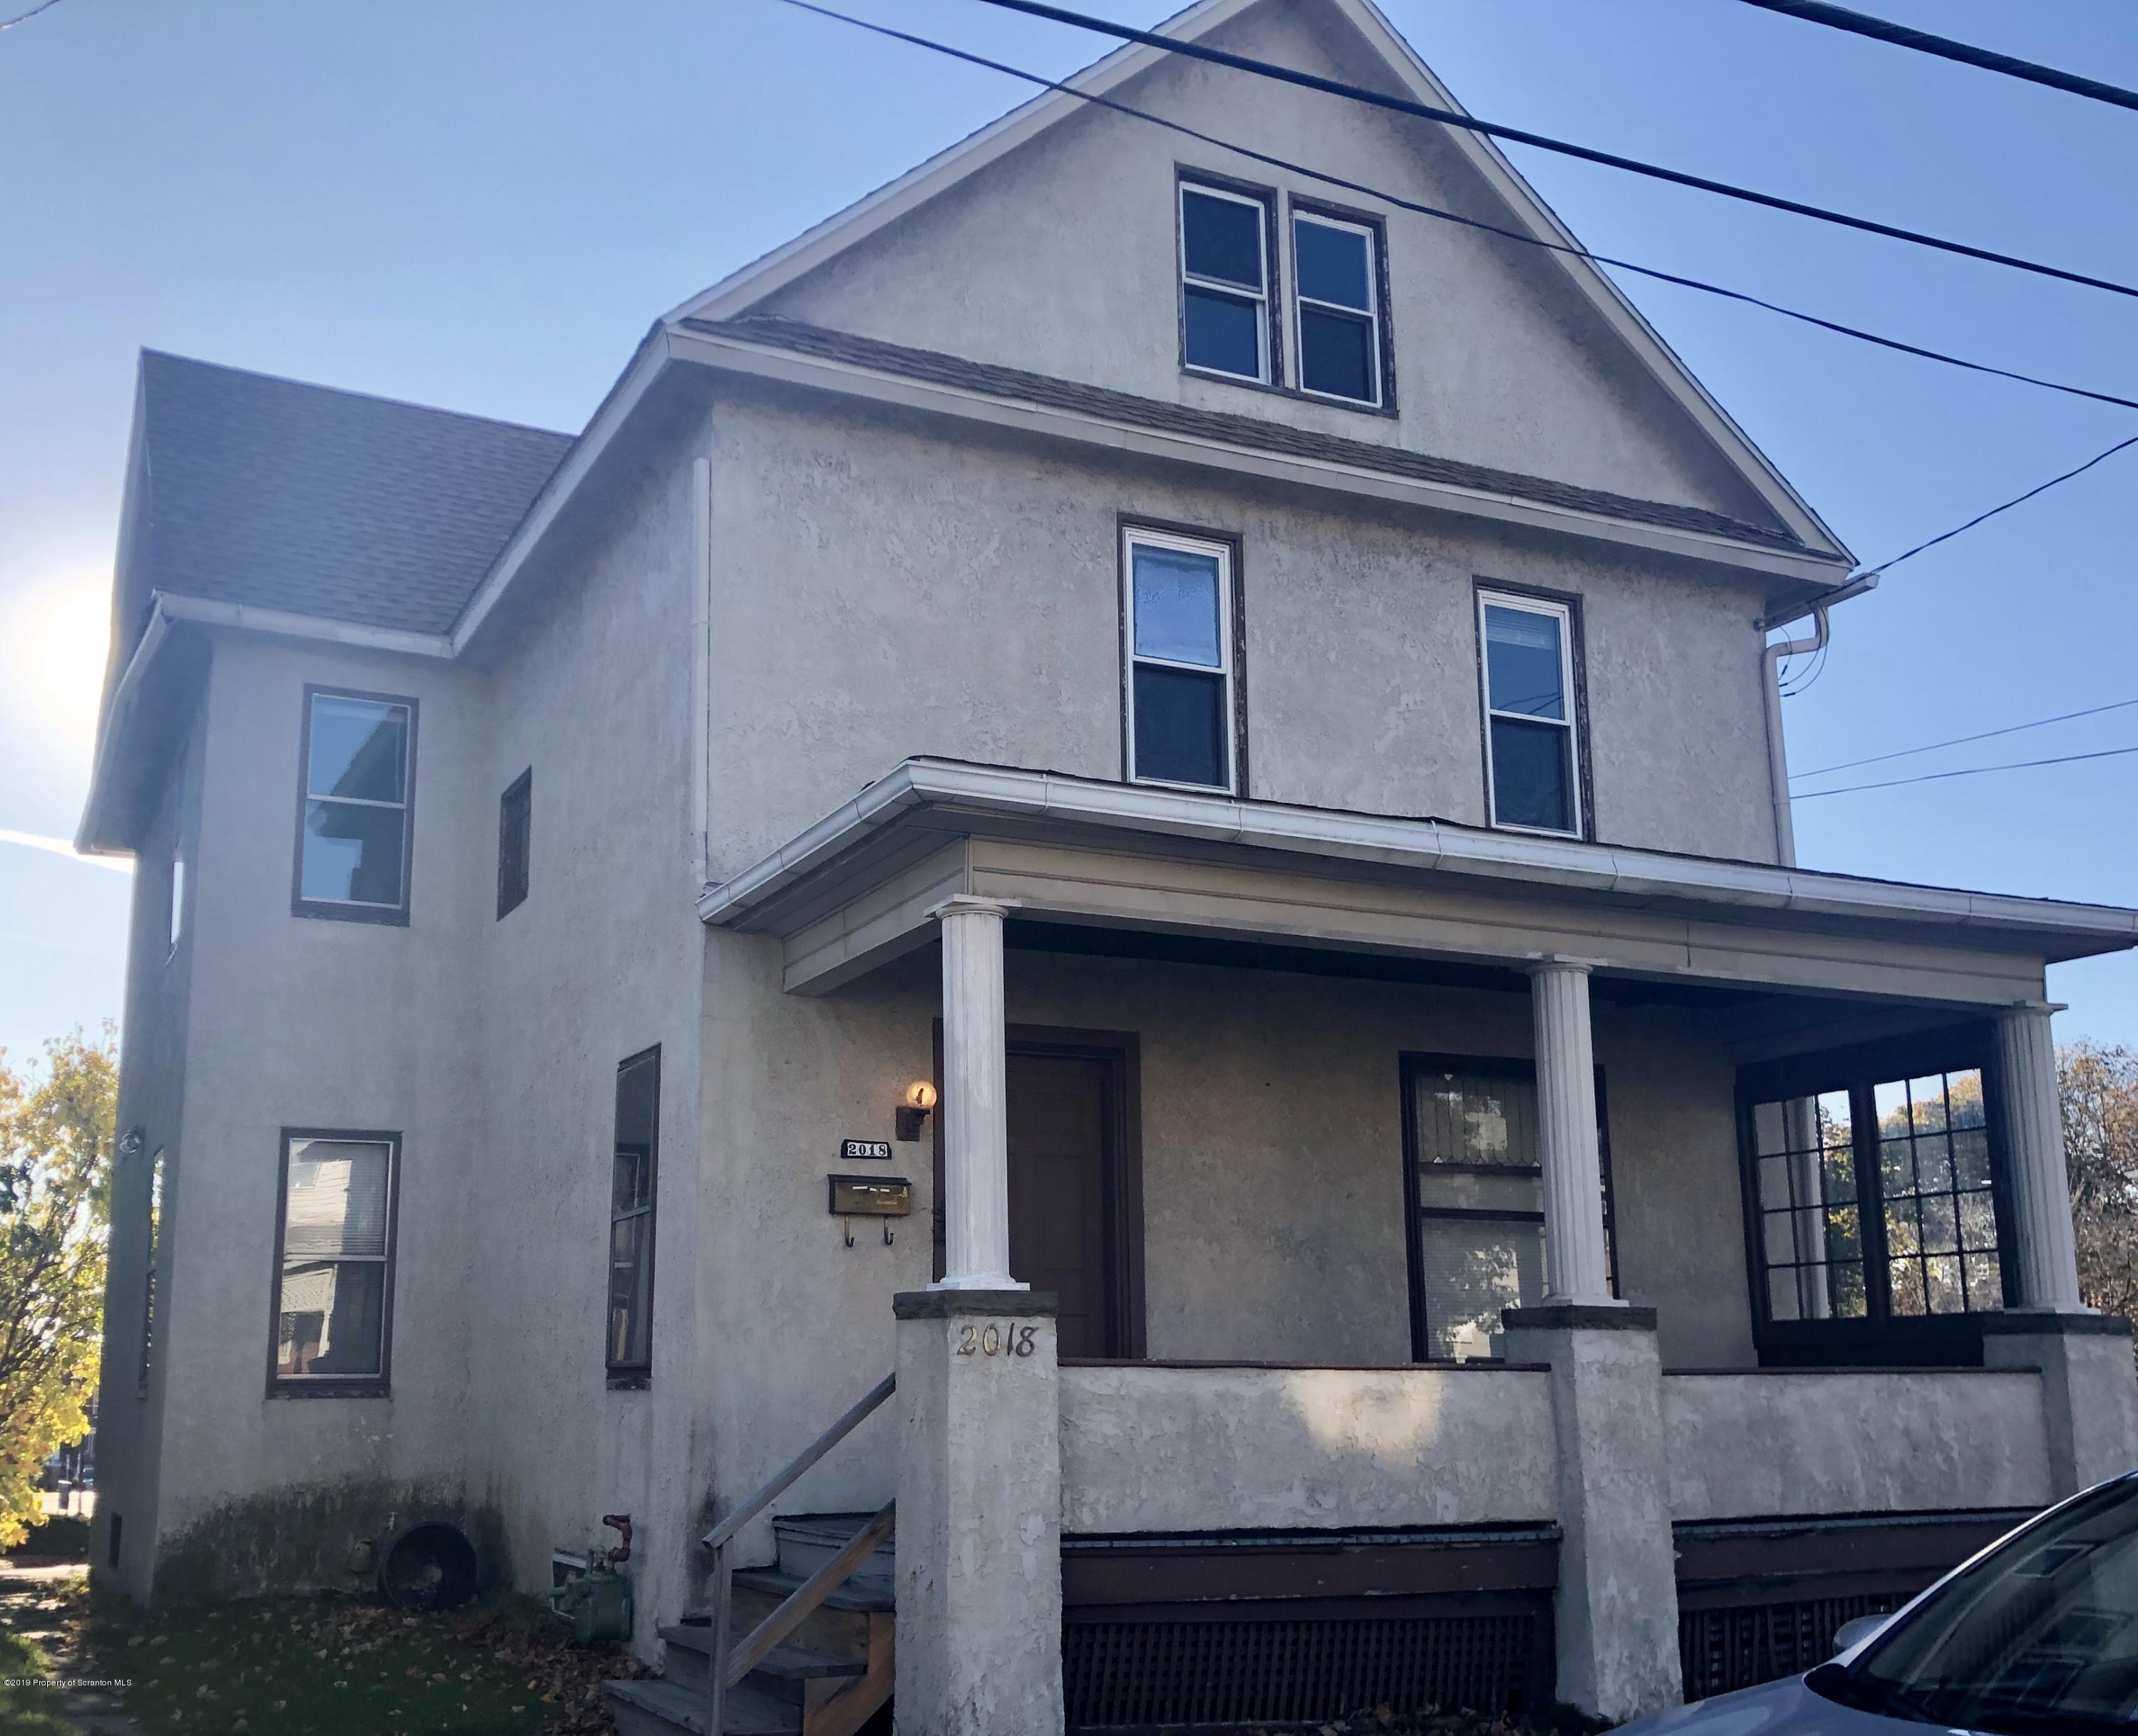 2018 Electric St, Dunmore, Pennsylvania 18512, 4 Bedrooms Bedrooms, 6 Rooms Rooms,2 BathroomsBathrooms,Rental,For Lease,Electric,19-5282